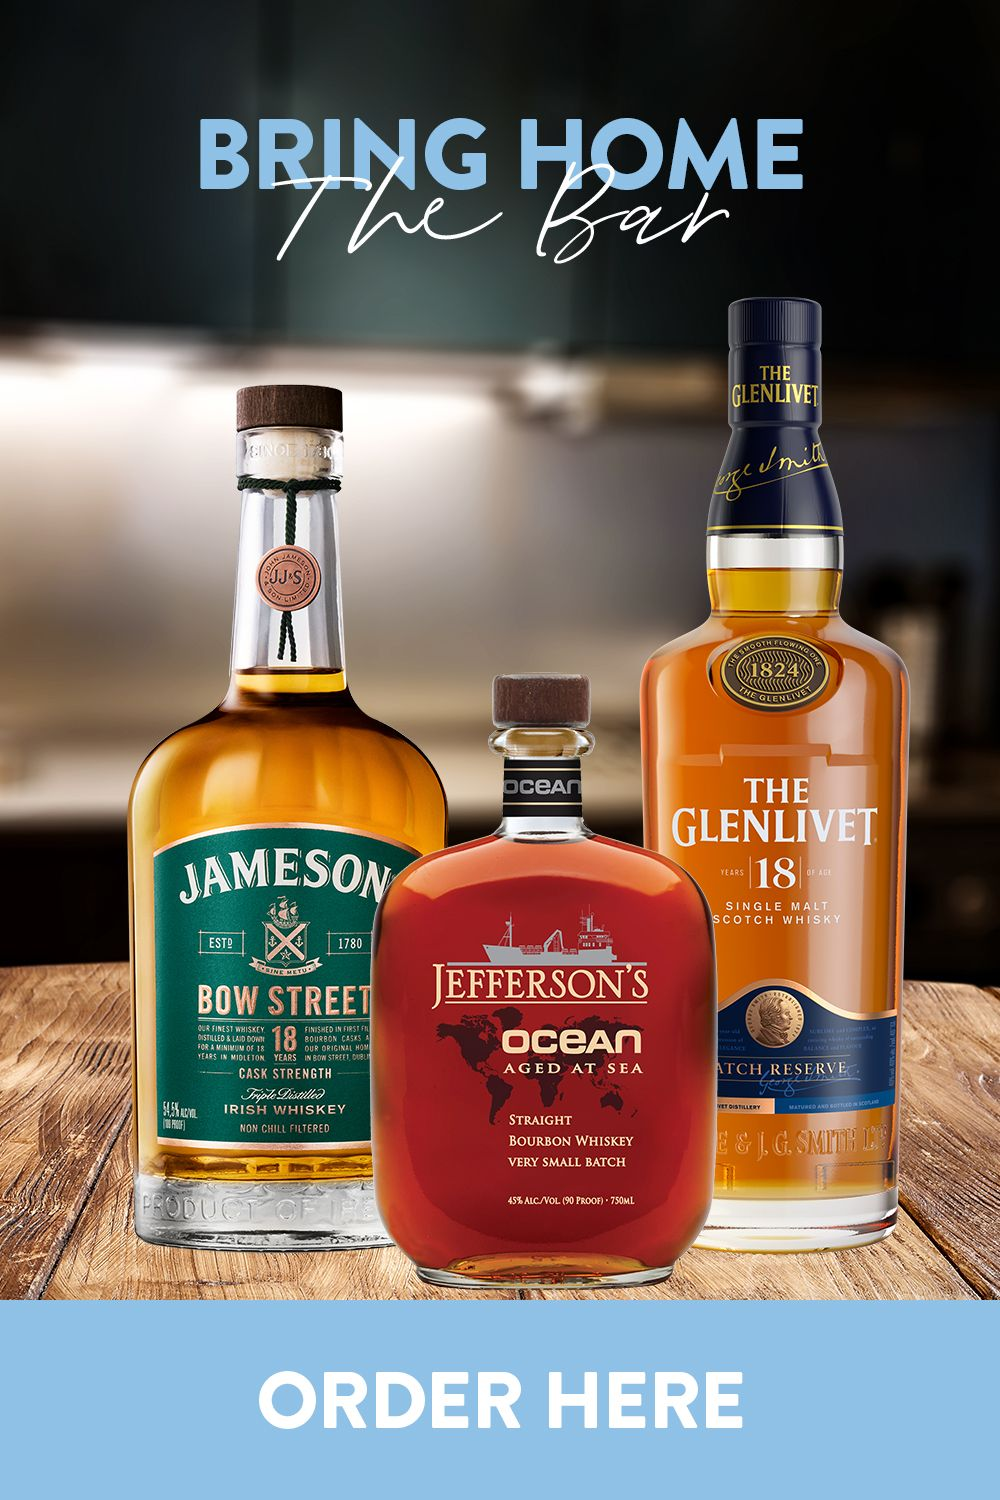 Get the home bar essentials delivered straight to your door. Stock up now. Cheers!